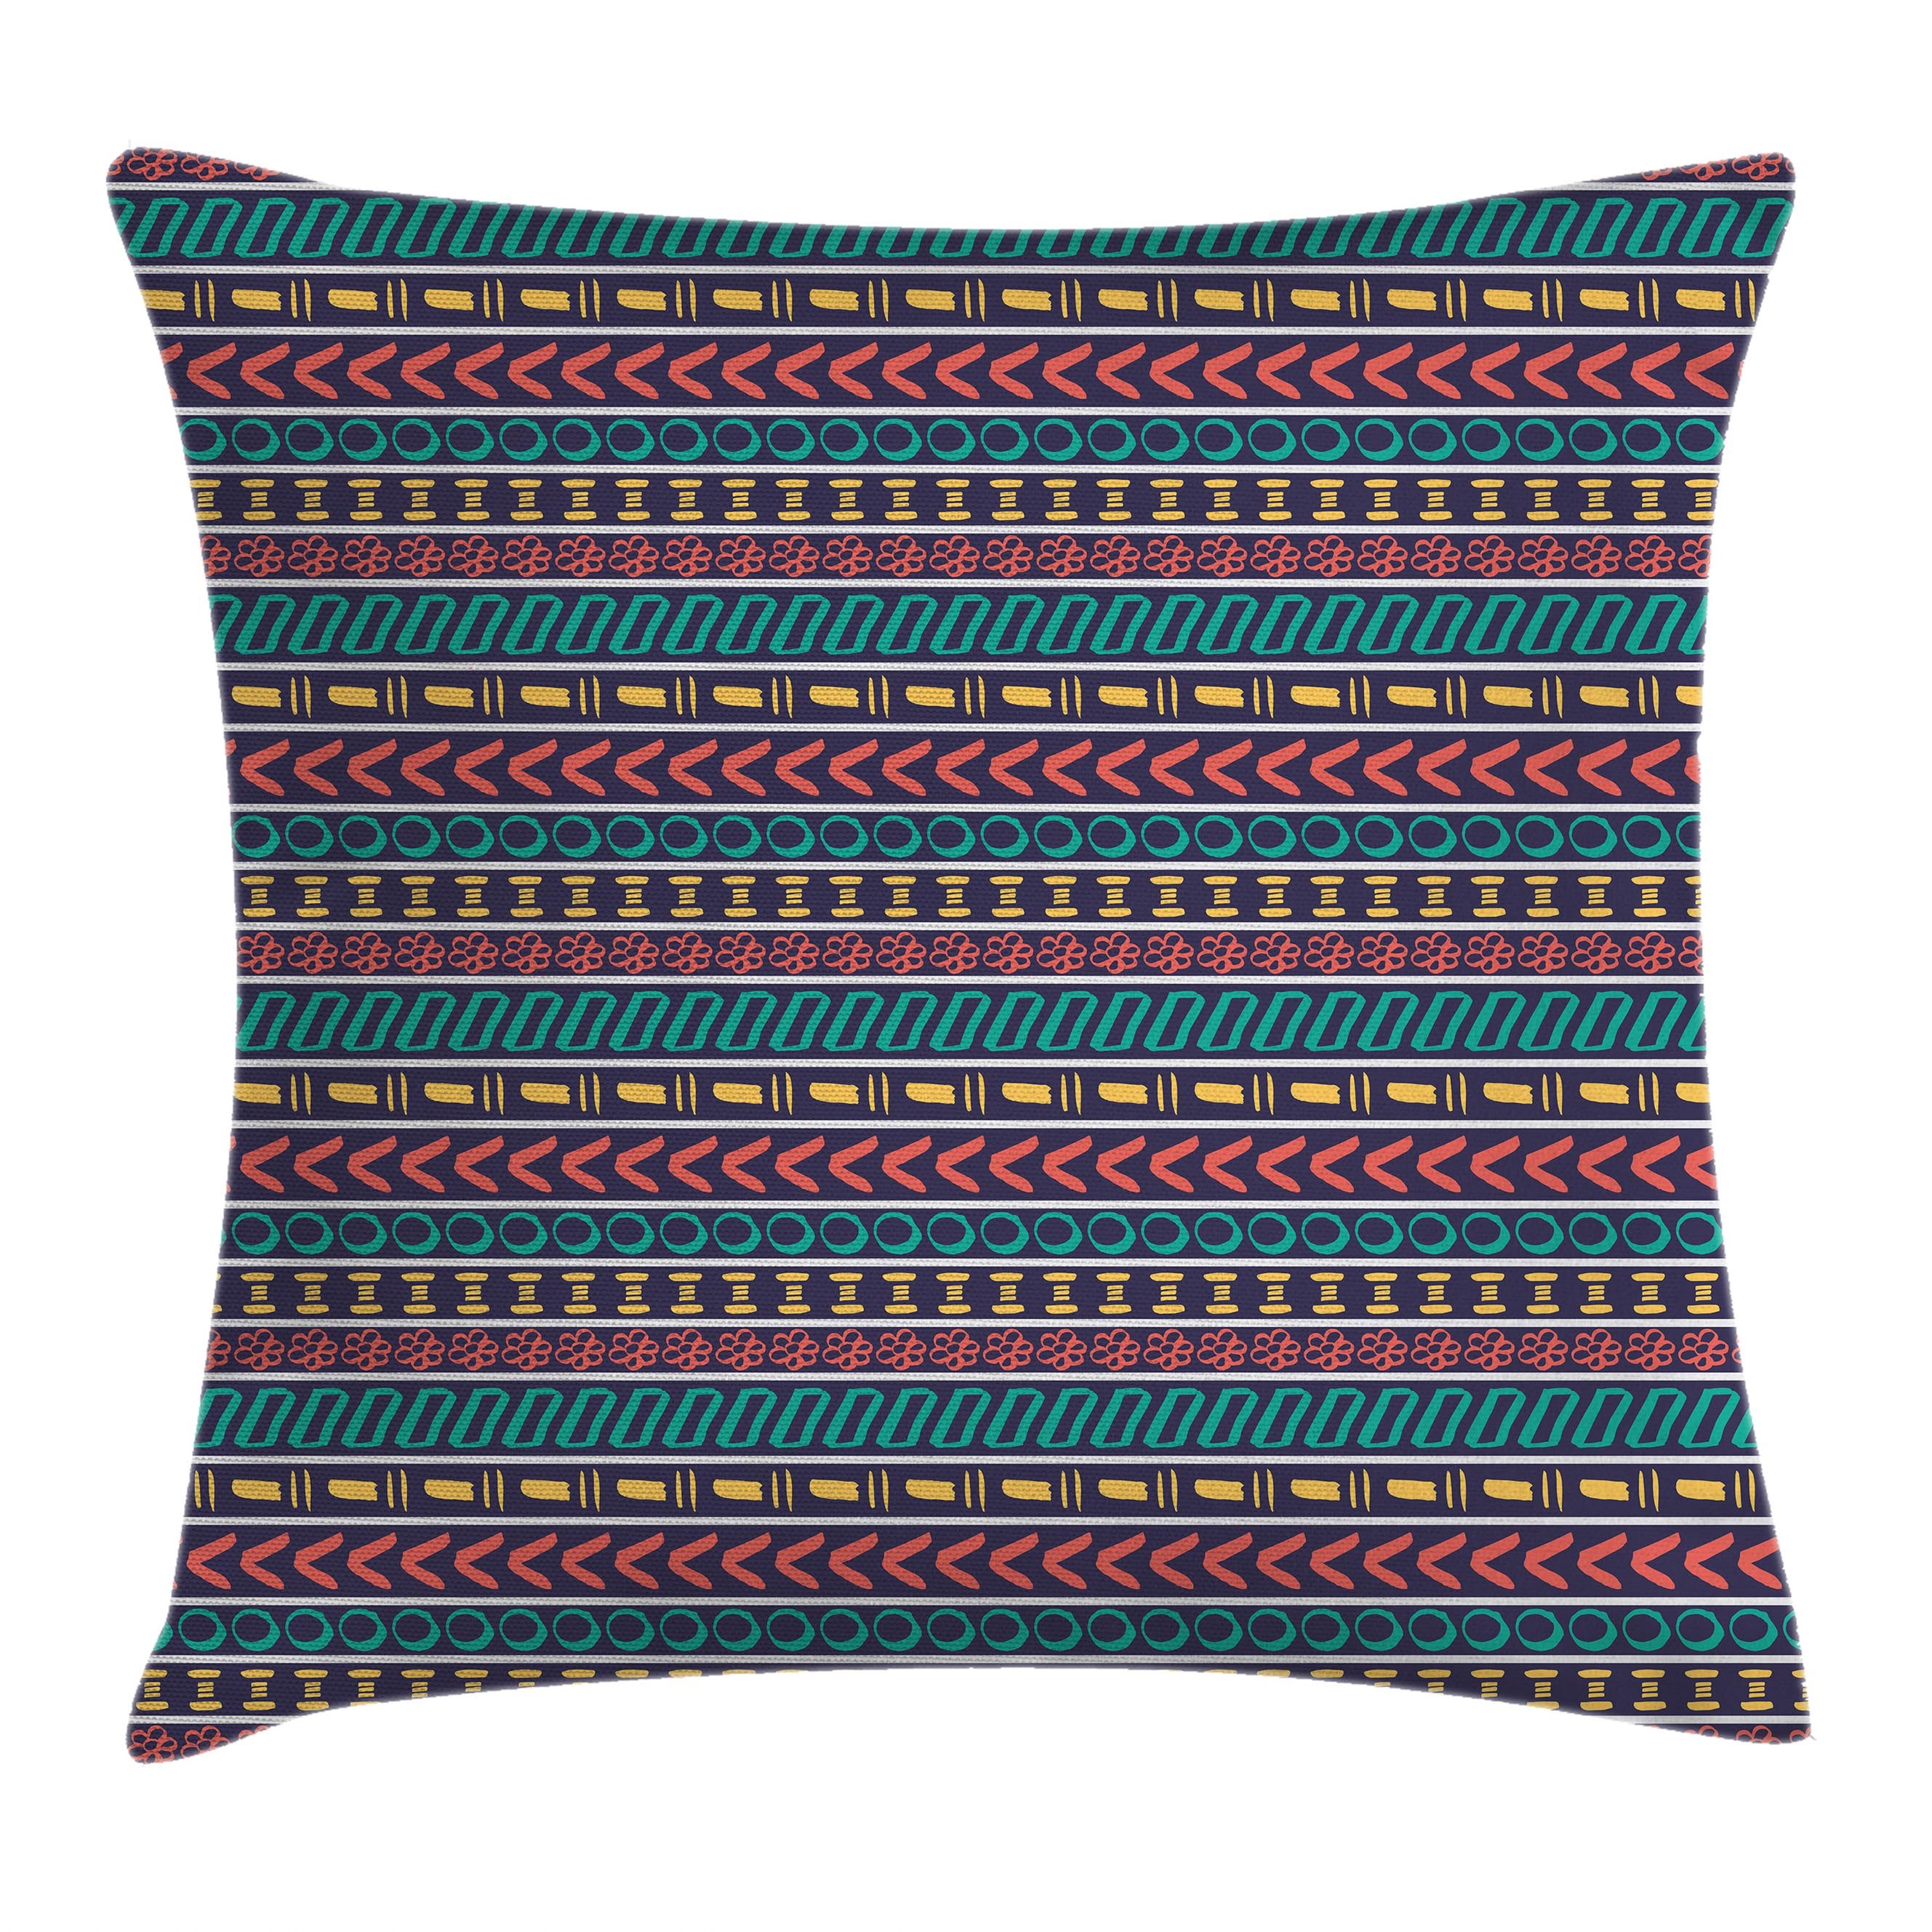 Striped Throw Pillow Cushion Cover Native American Indian Aztec Style Navajo Pattern With Geometric Trippy Forms Art Print Decorative Square Accent